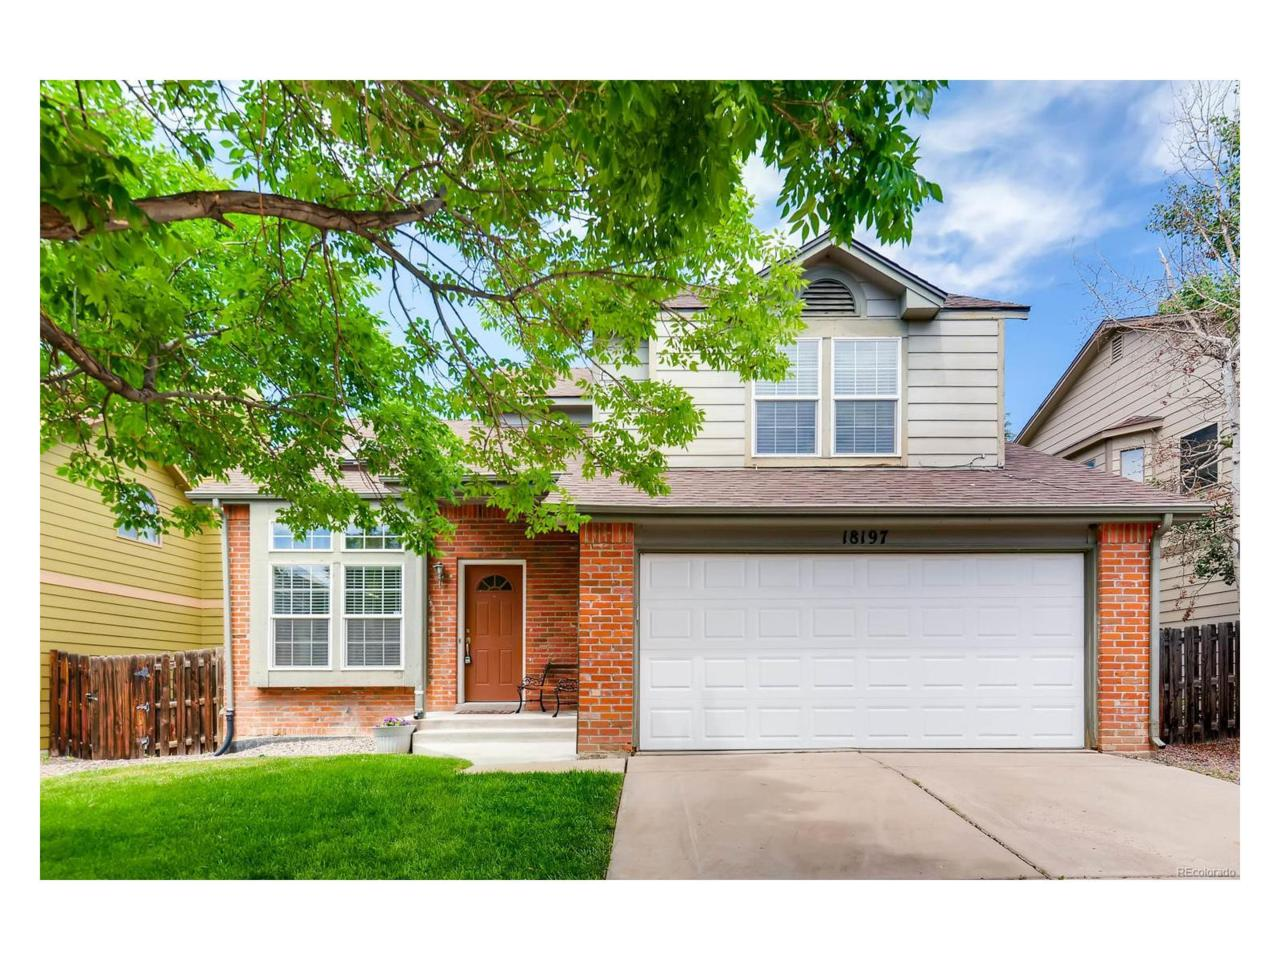 18197 E Harvard Place, Aurora, CO 80013 (MLS #7952895) :: 8z Real Estate